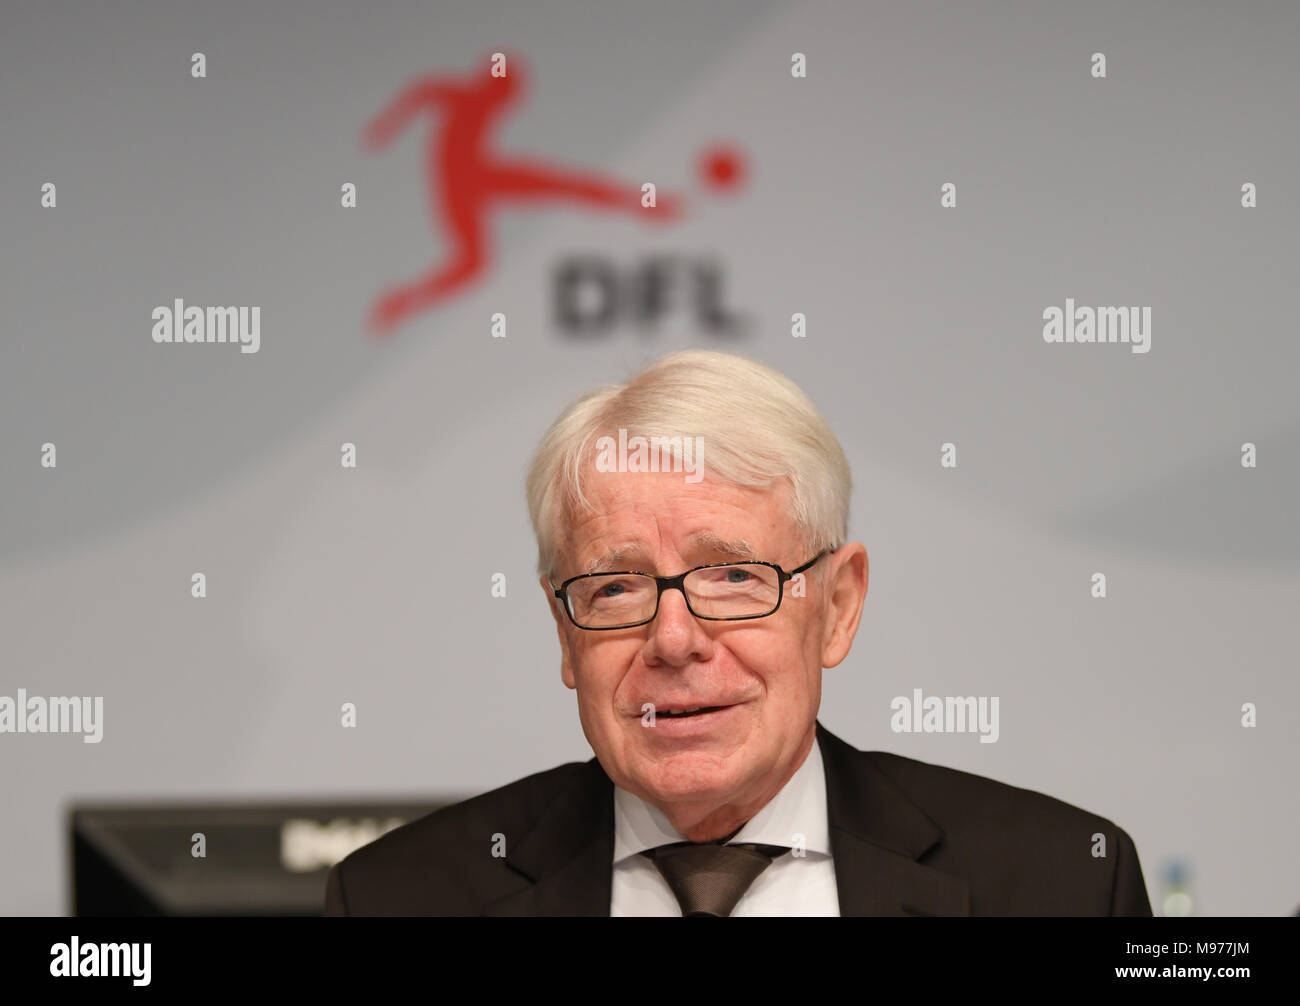 22 March 2018, Germany, Frankfurt/Main: Reinhard Raubull, President of the German Soccer League (DFL), speaks at a press conference. Photo: Arne Dedert/dpa - Stock Image